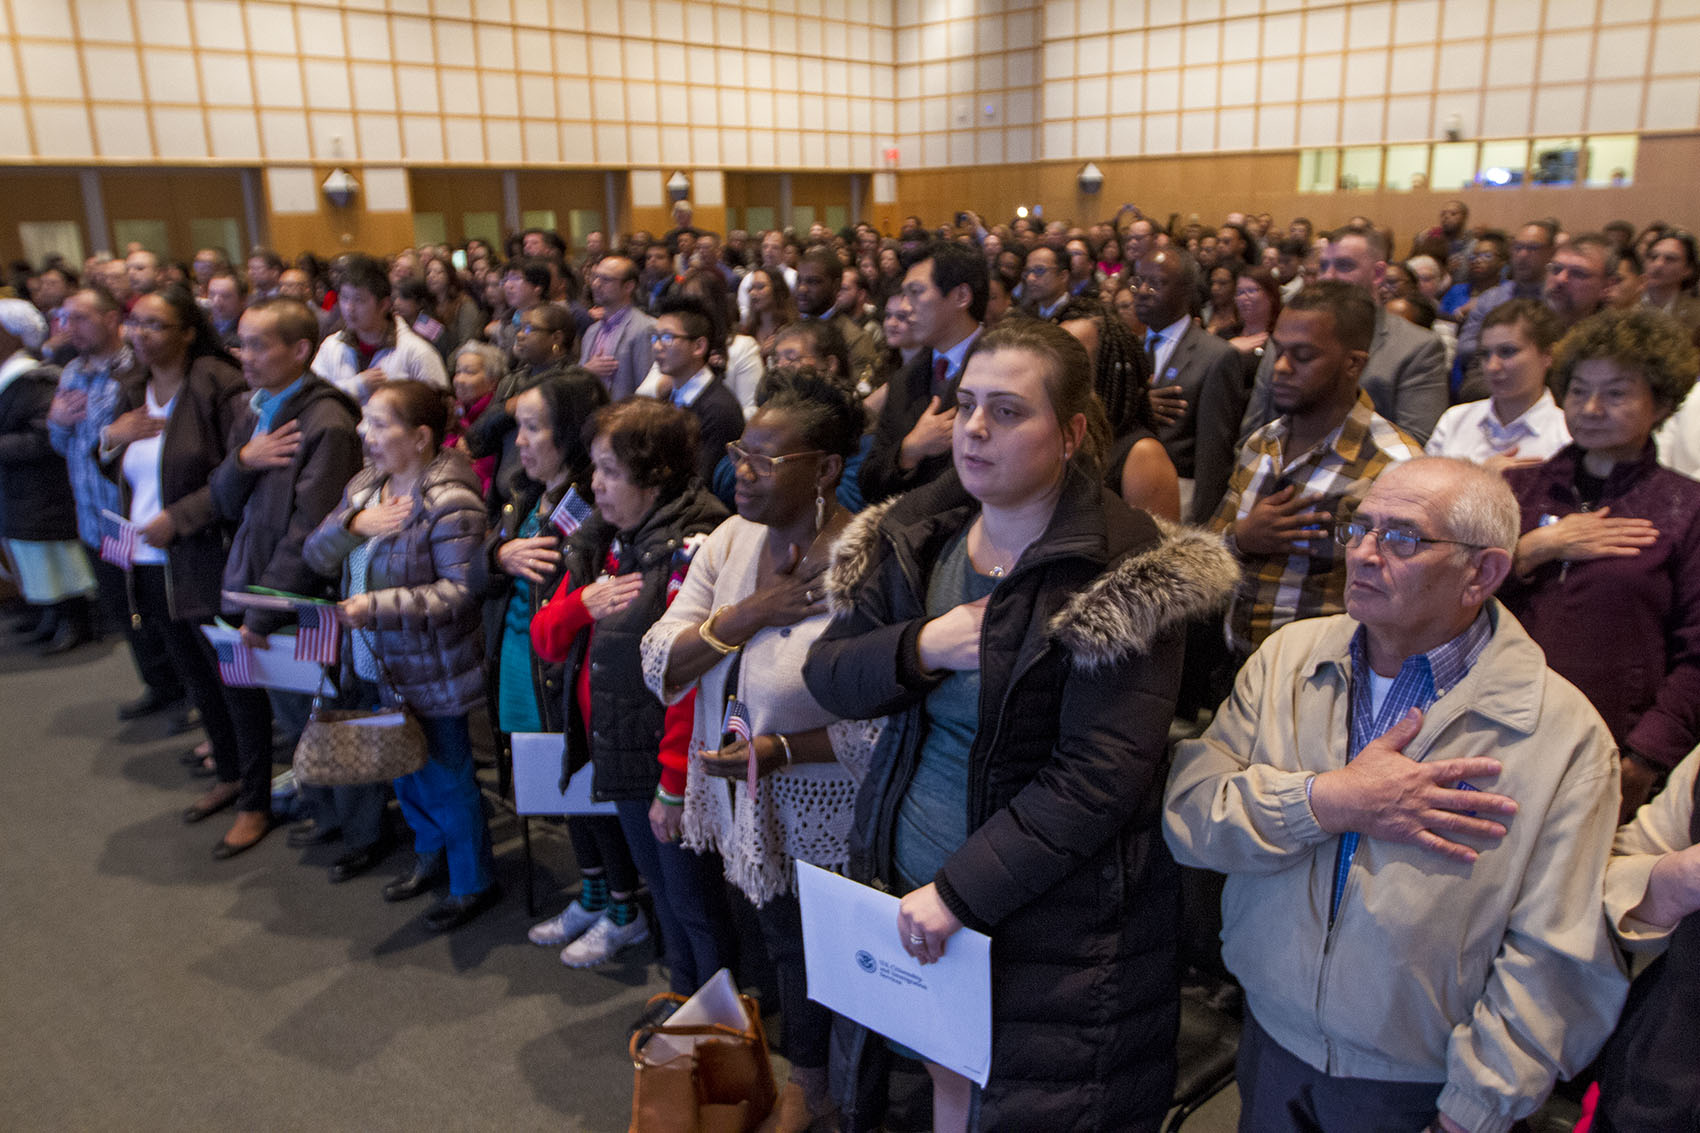 New citizens recite the Pledge Of Allegiance during a ceremony at the Boston's JFK Library on Thursday. (Jesse Costa/WBUR)